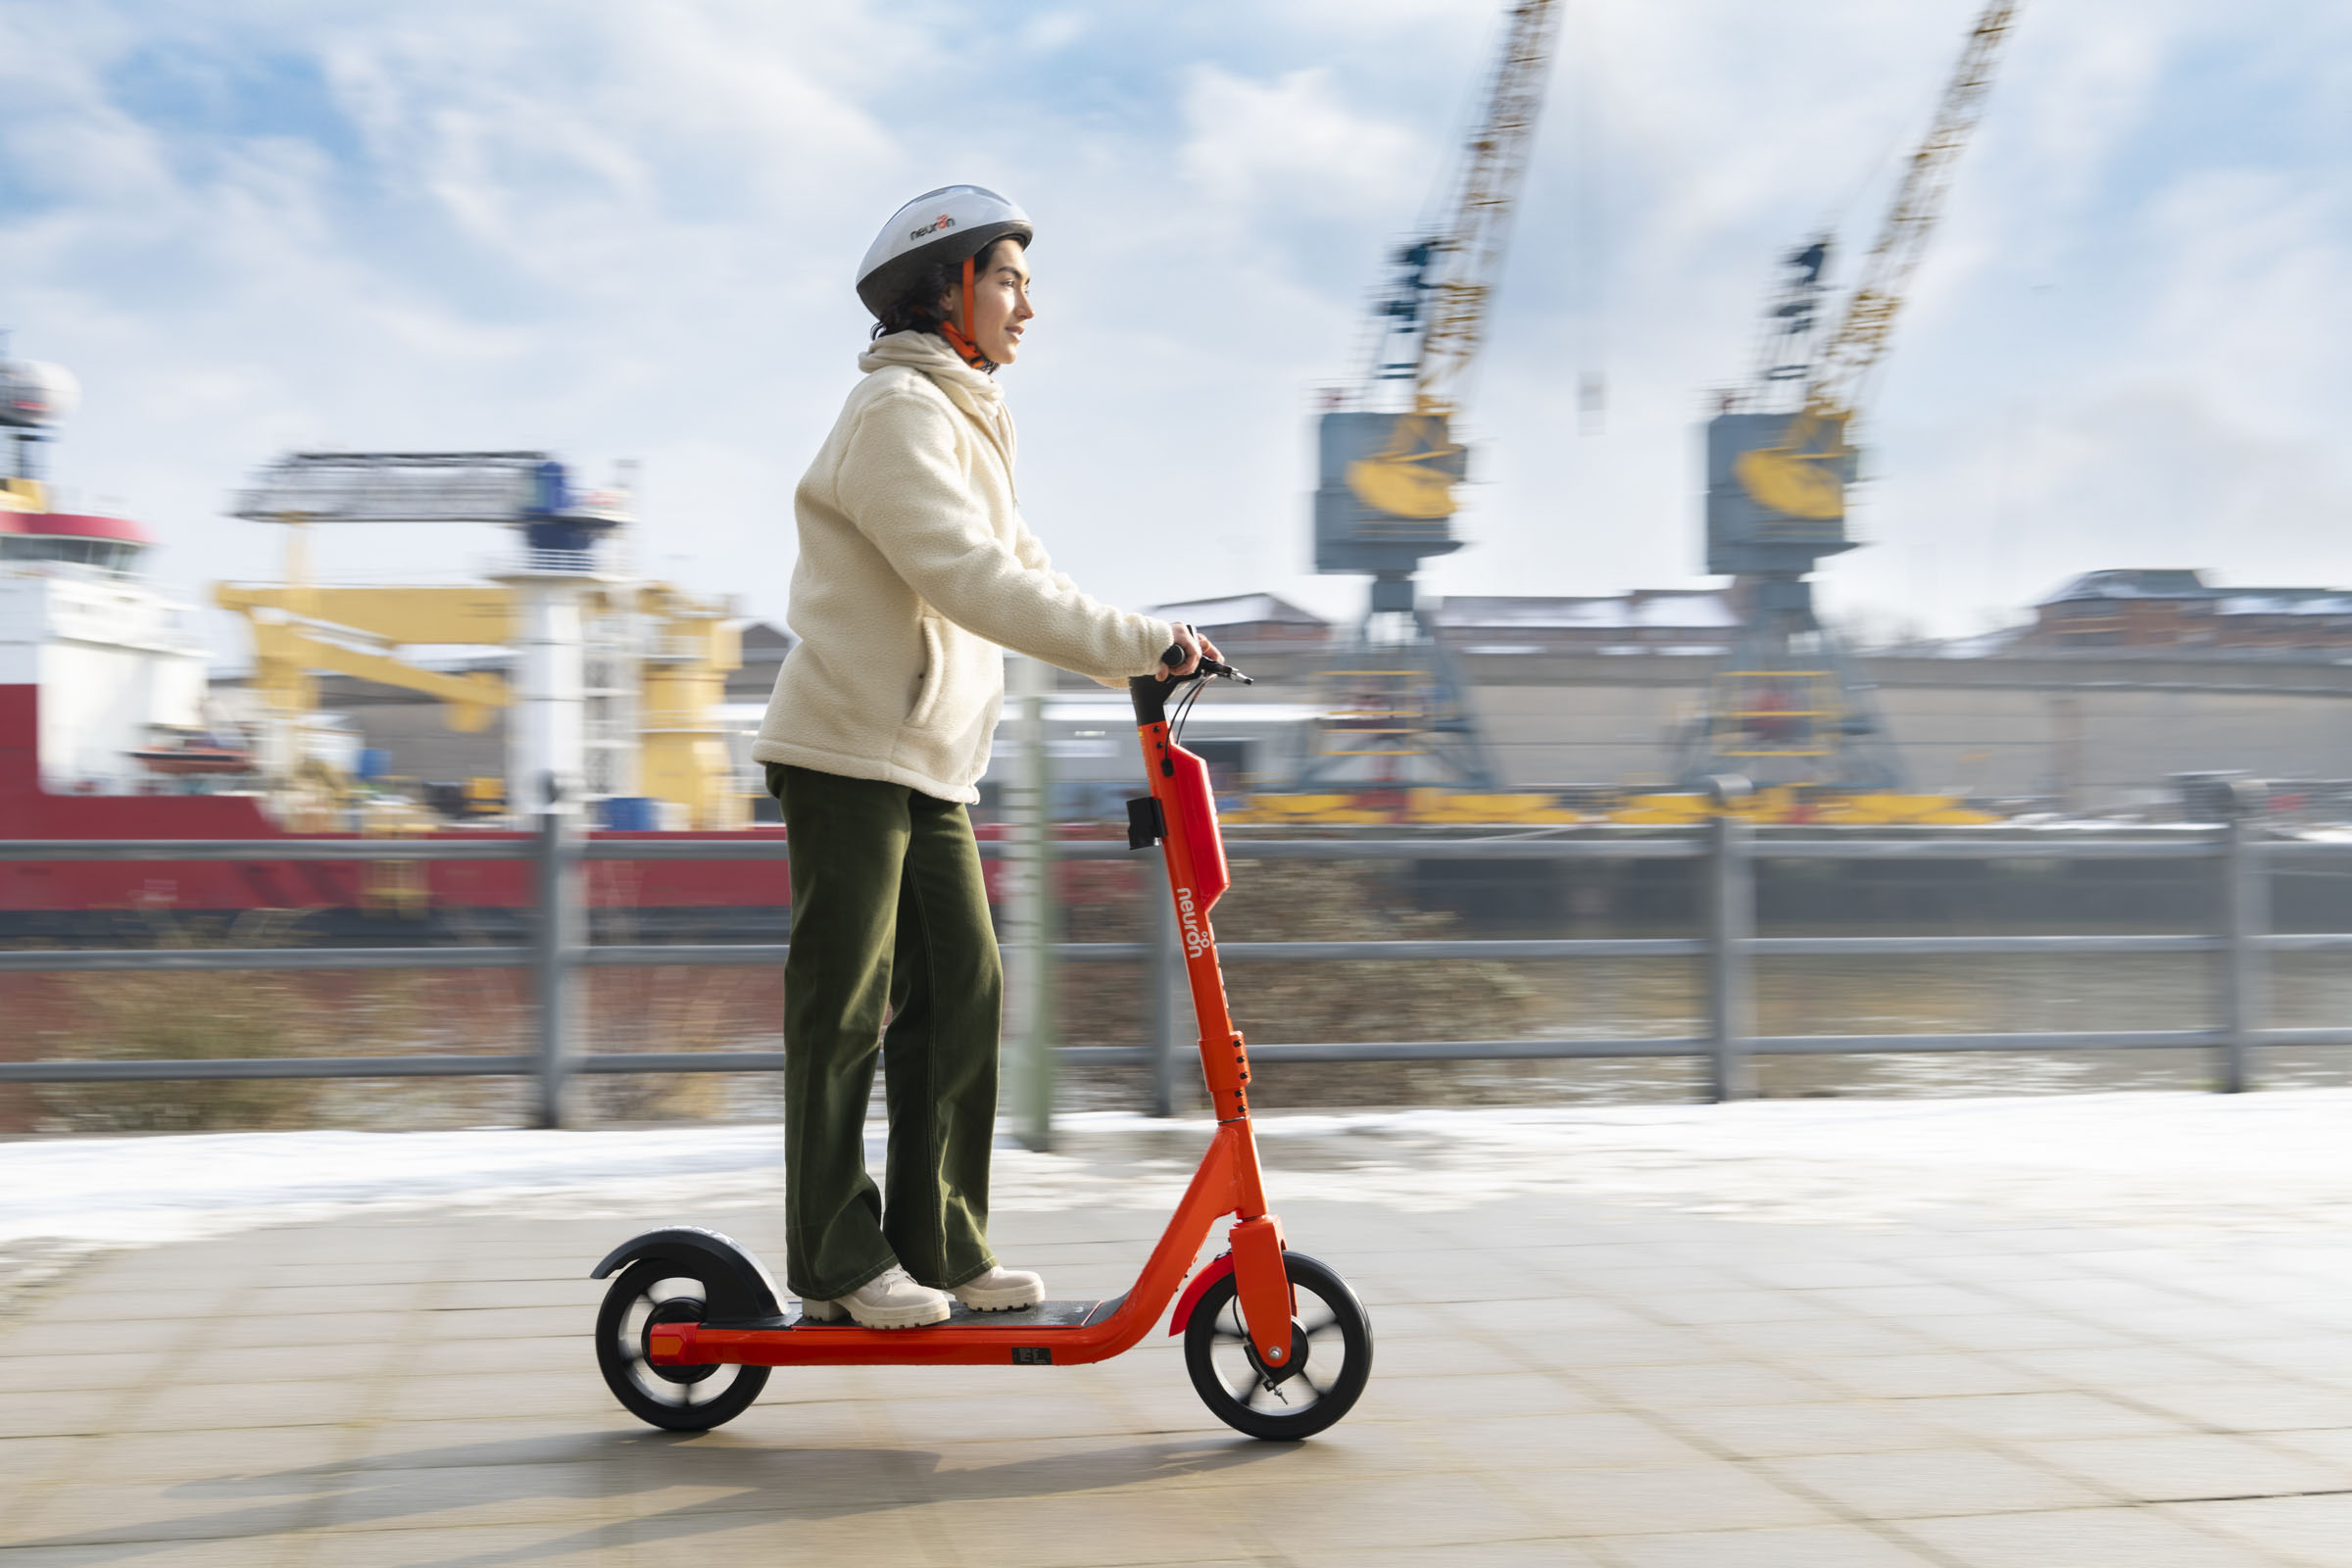 Micromobility highlighted in new FIA road safety campaign